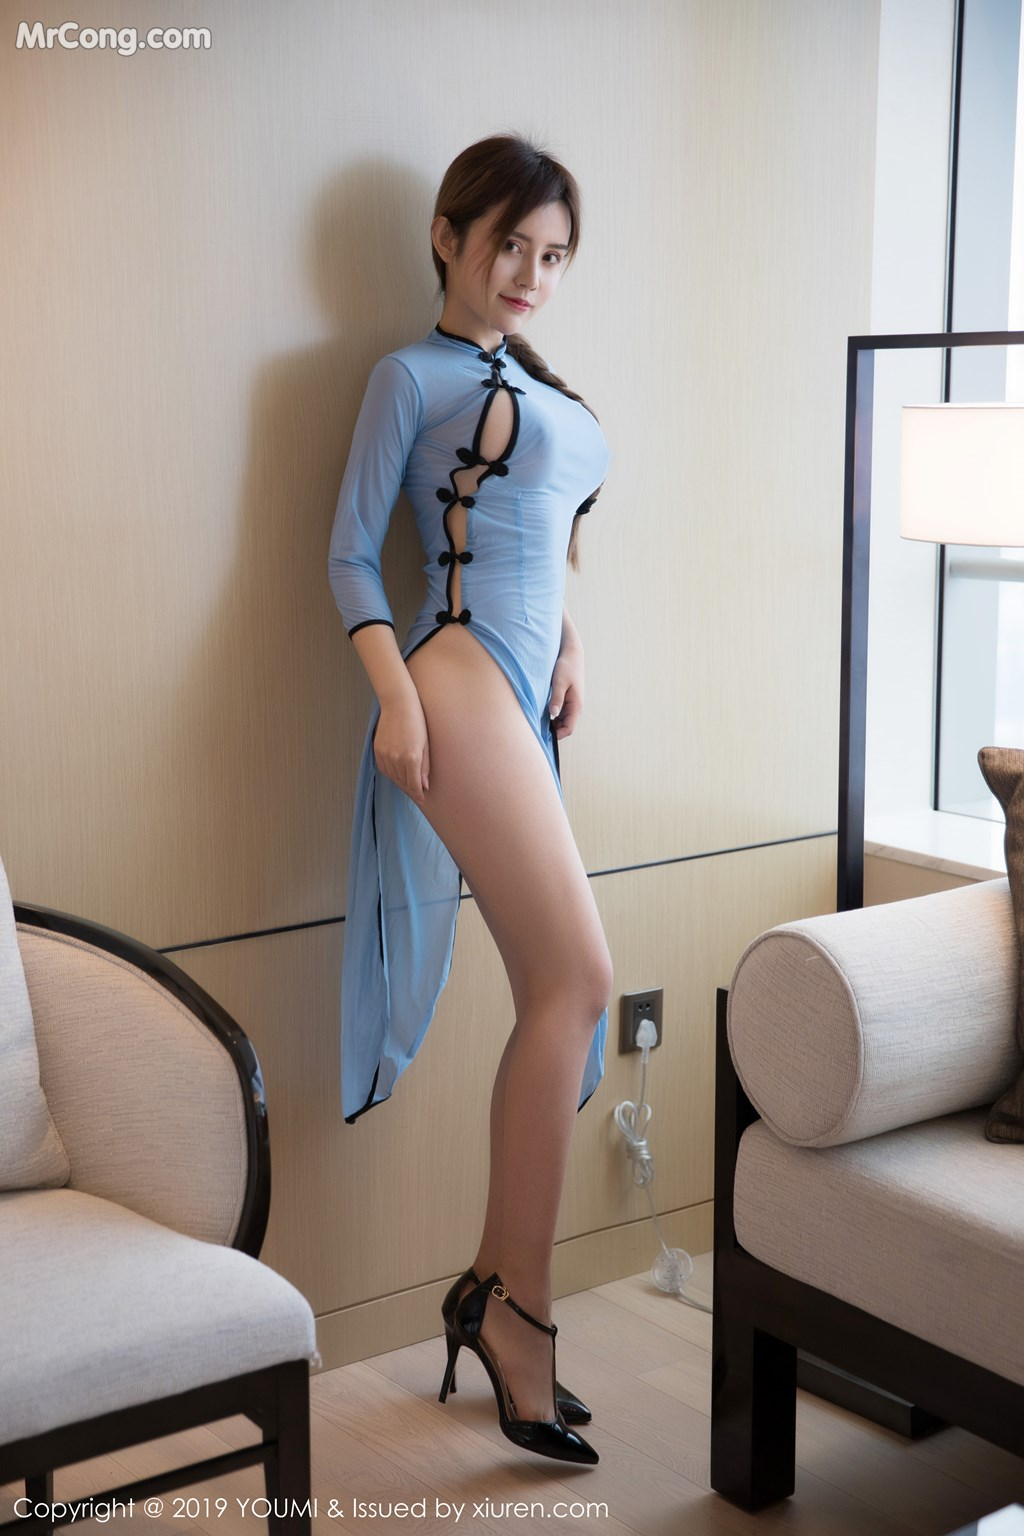 Image YouMi-Vol.353-Cris-MrCong.com-002 in post YouMi Vol.353: Cris_卓娅祺 (51 ảnh)